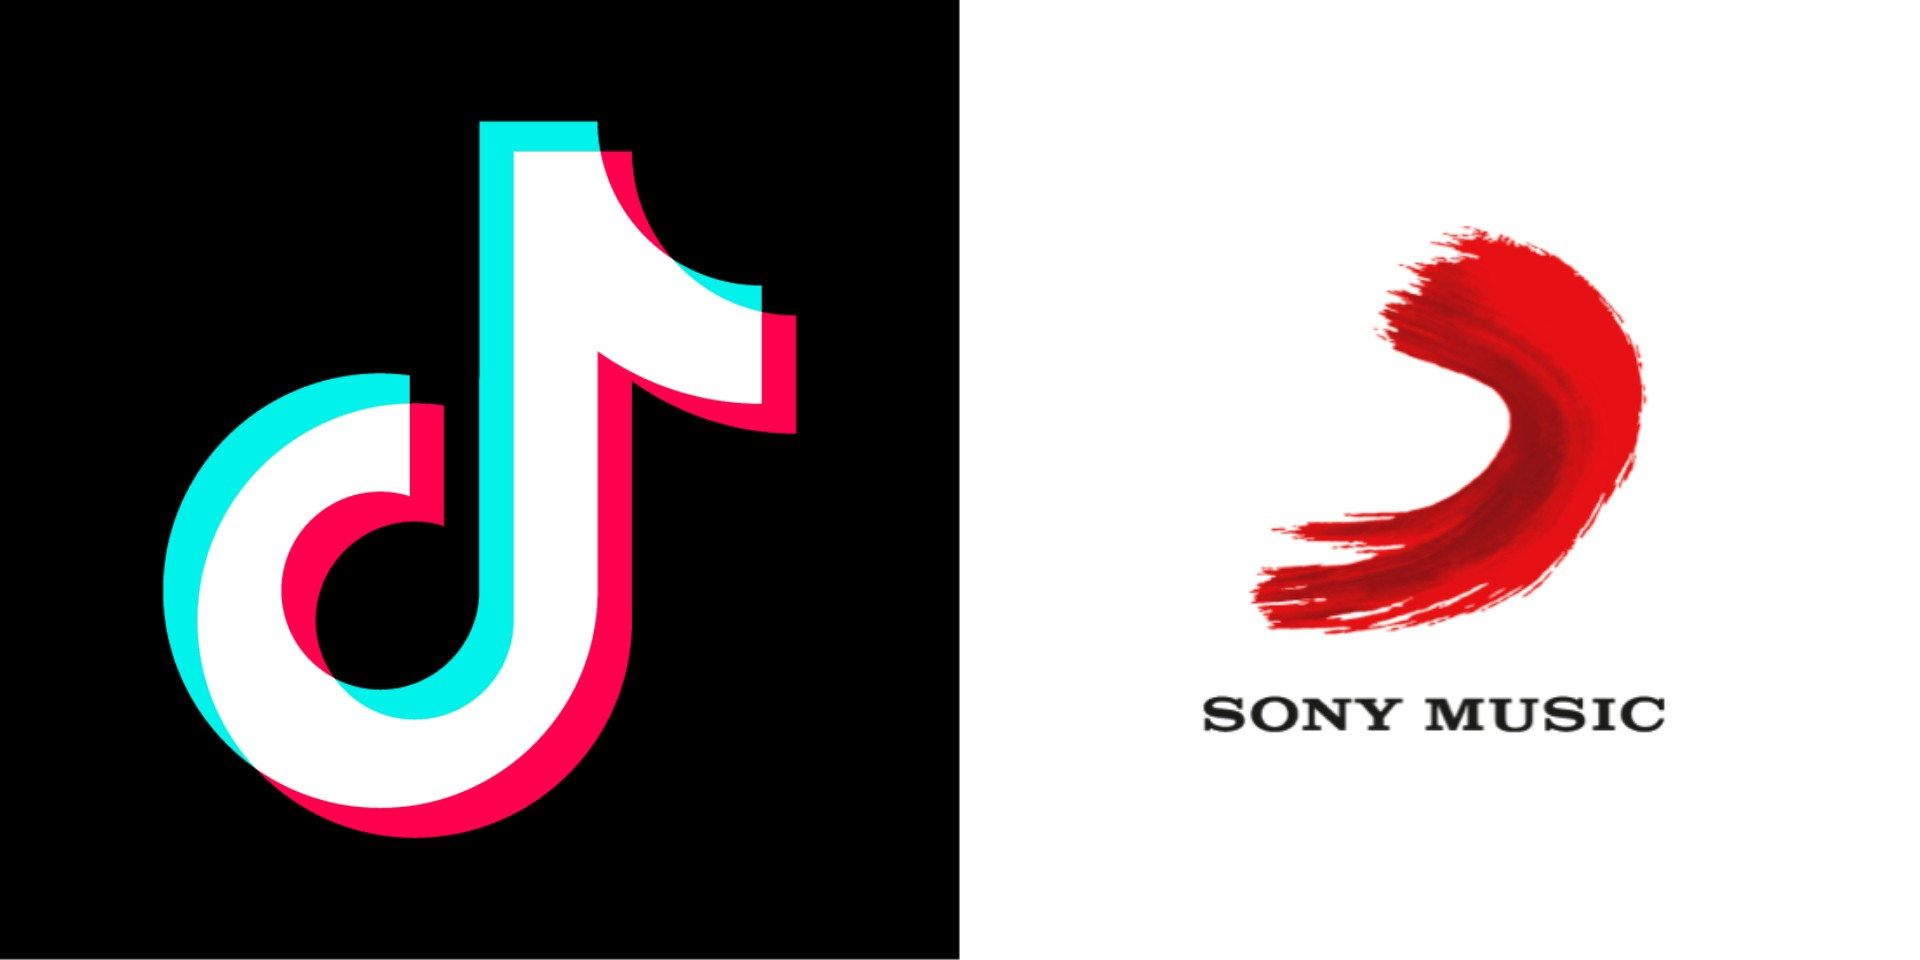 TikTok announces new deal with Sony Music Entertainment to give users access to more music